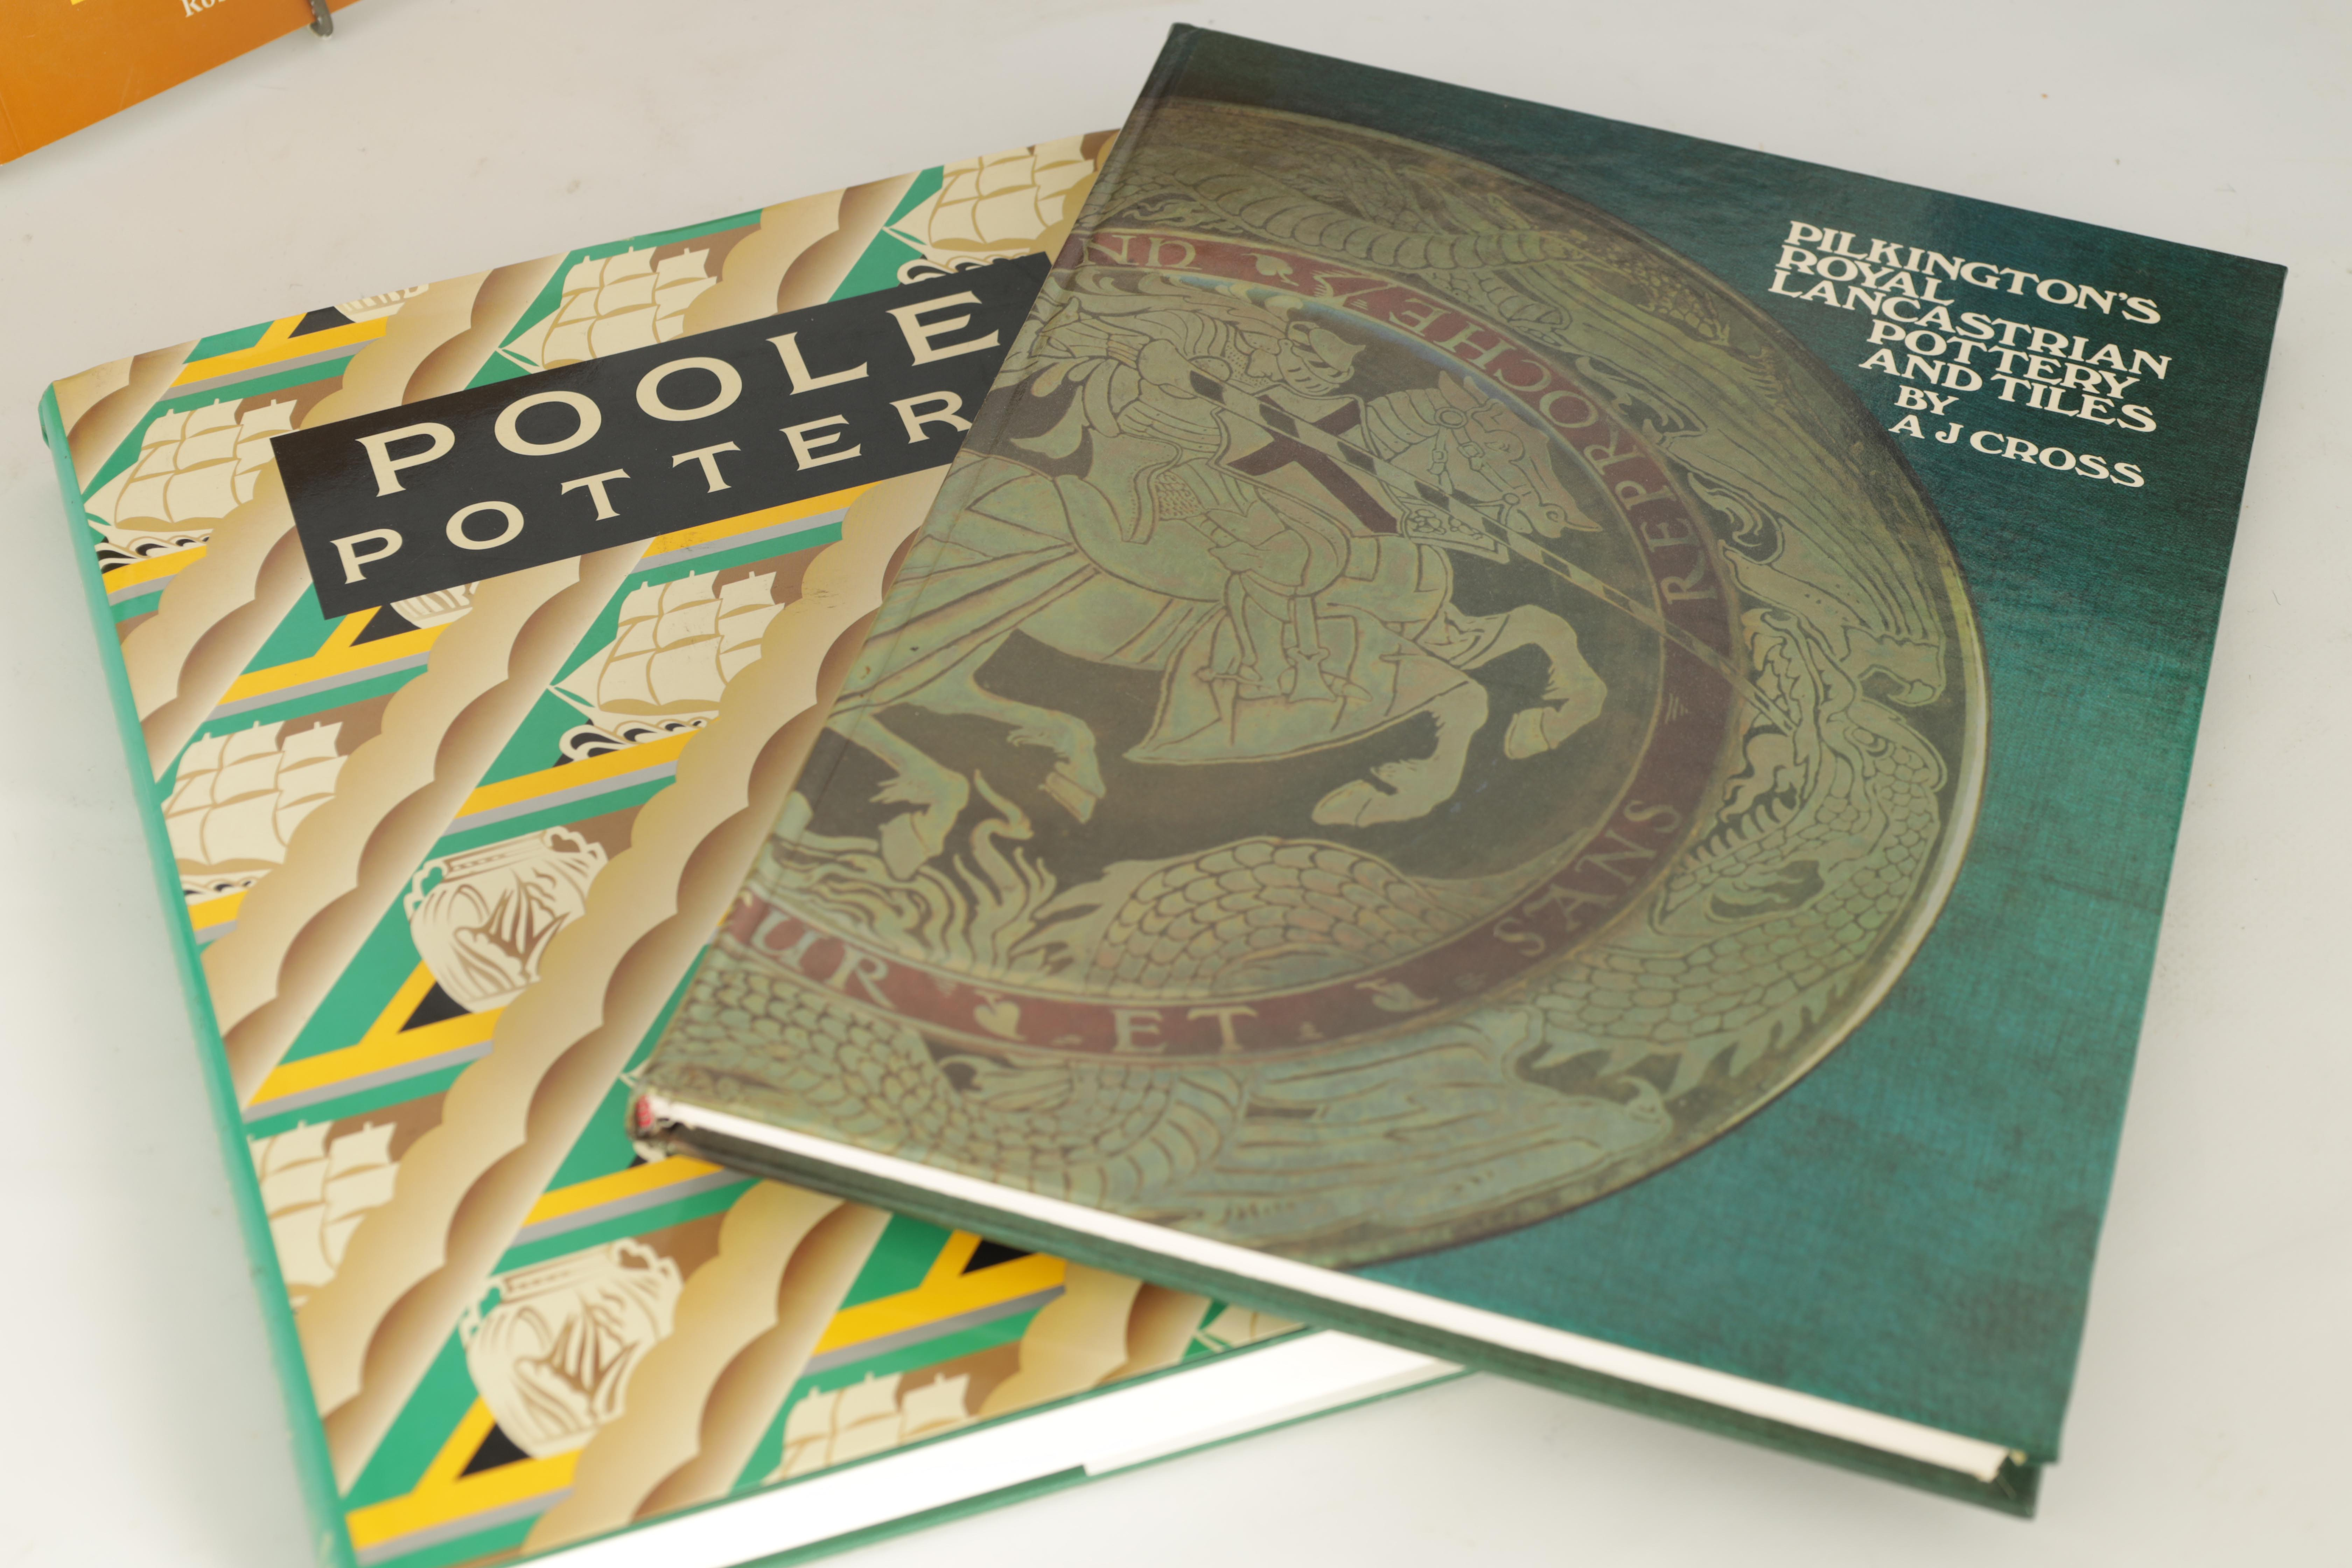 A COLLECTION OF EIGHT CERAMIC REFERENCE BOOKS including Poole pottery by Lesley Haward edited by - Image 2 of 9